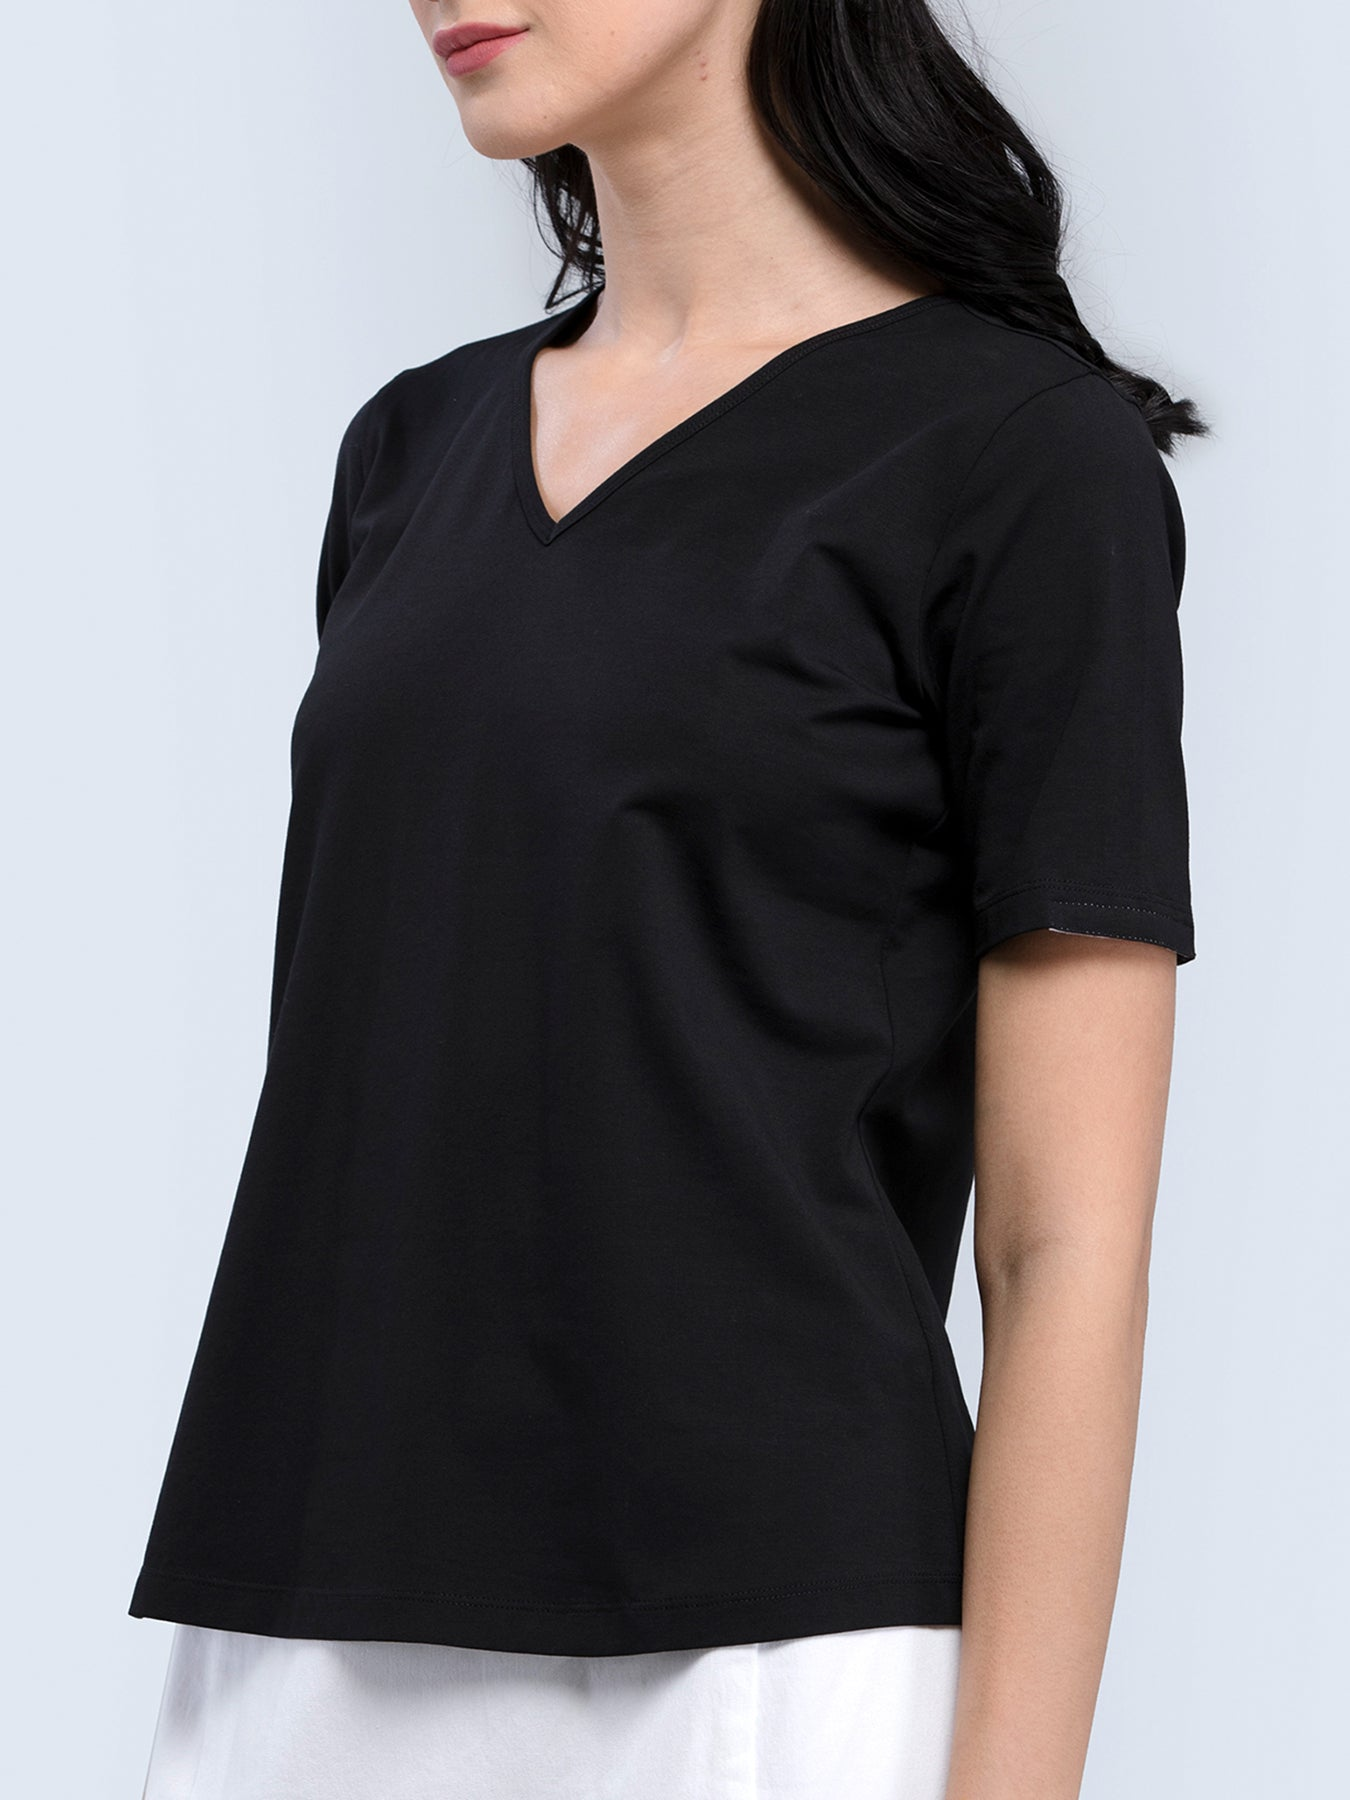 Cotton V Neck Knitted T Shirt - Black